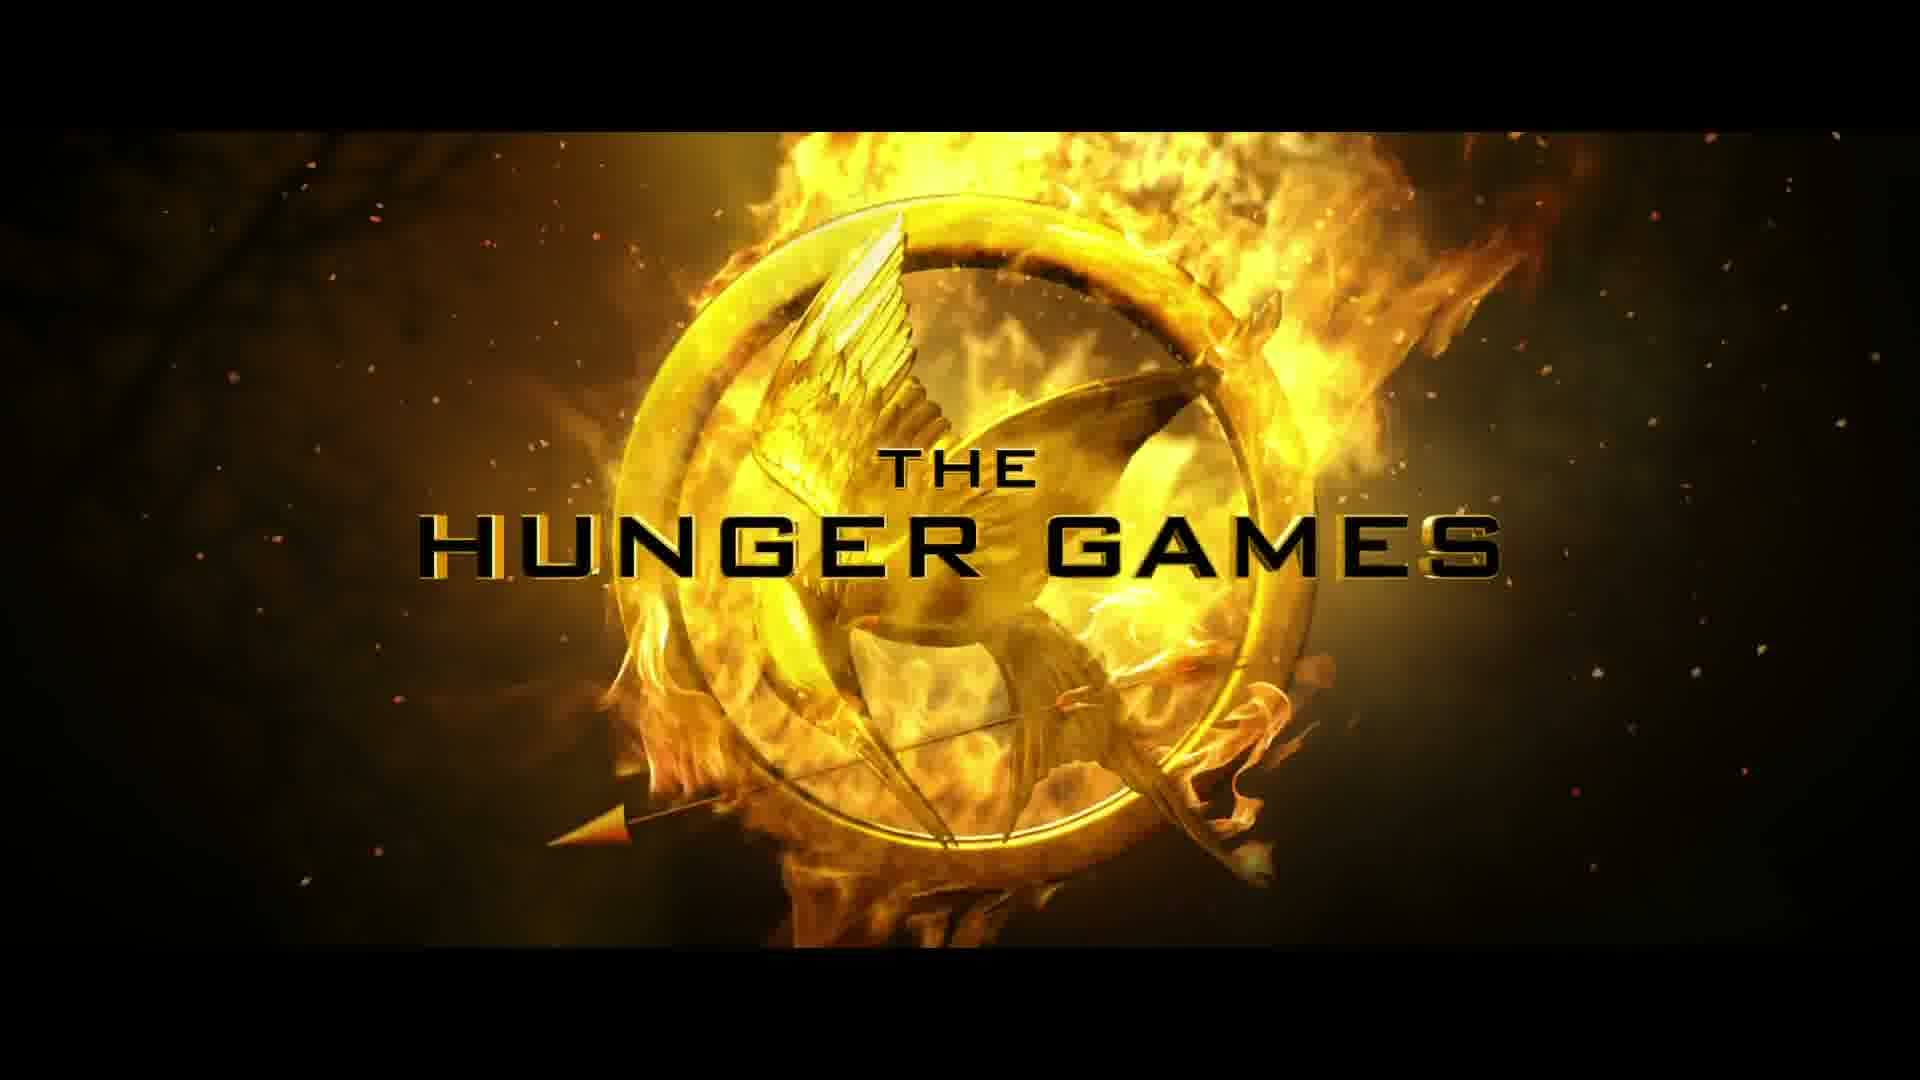 1920x1080 Cato images 'The Hunger Games' trailer #2 HD wallpaper and background photos